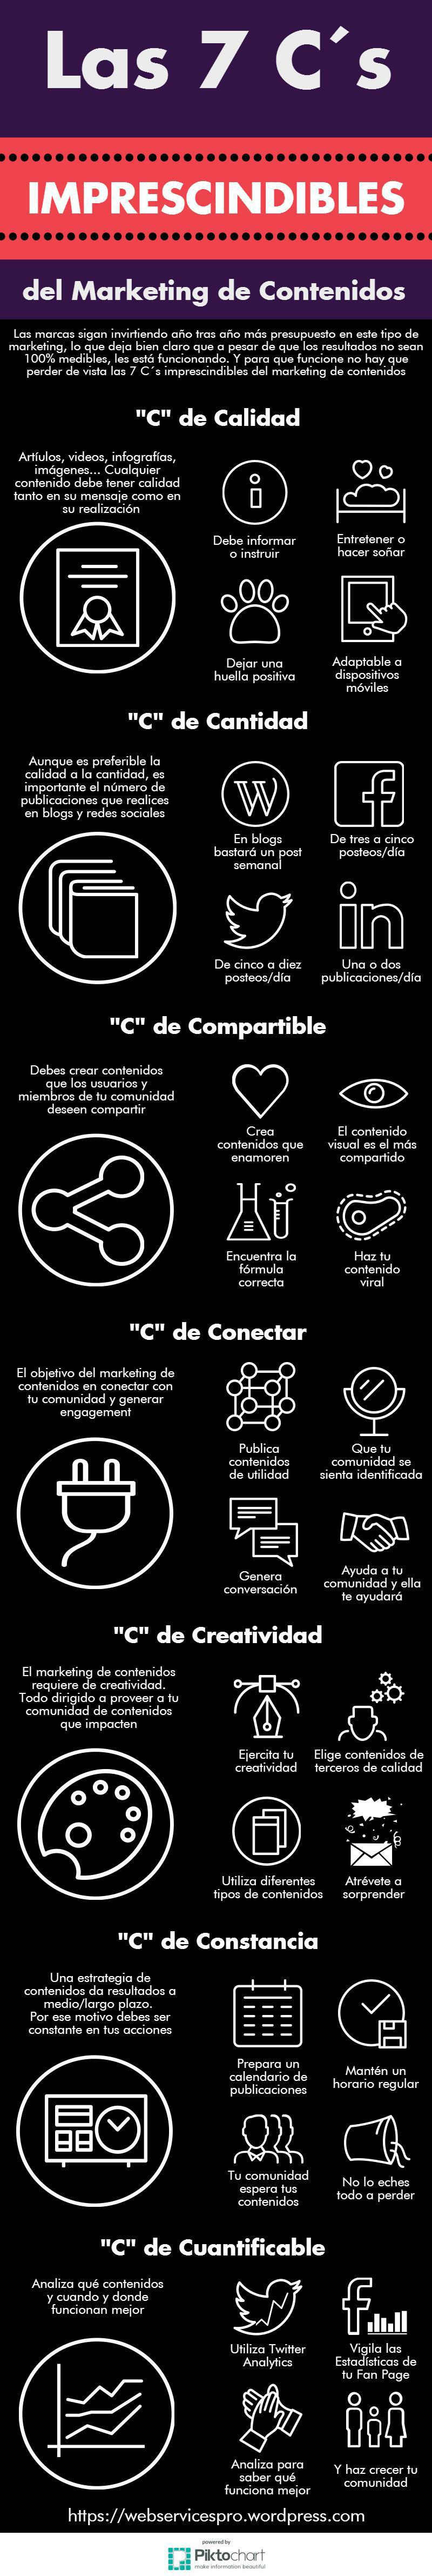 "Las 7 ""C"" imprescindibles del Marketing de Contenido"